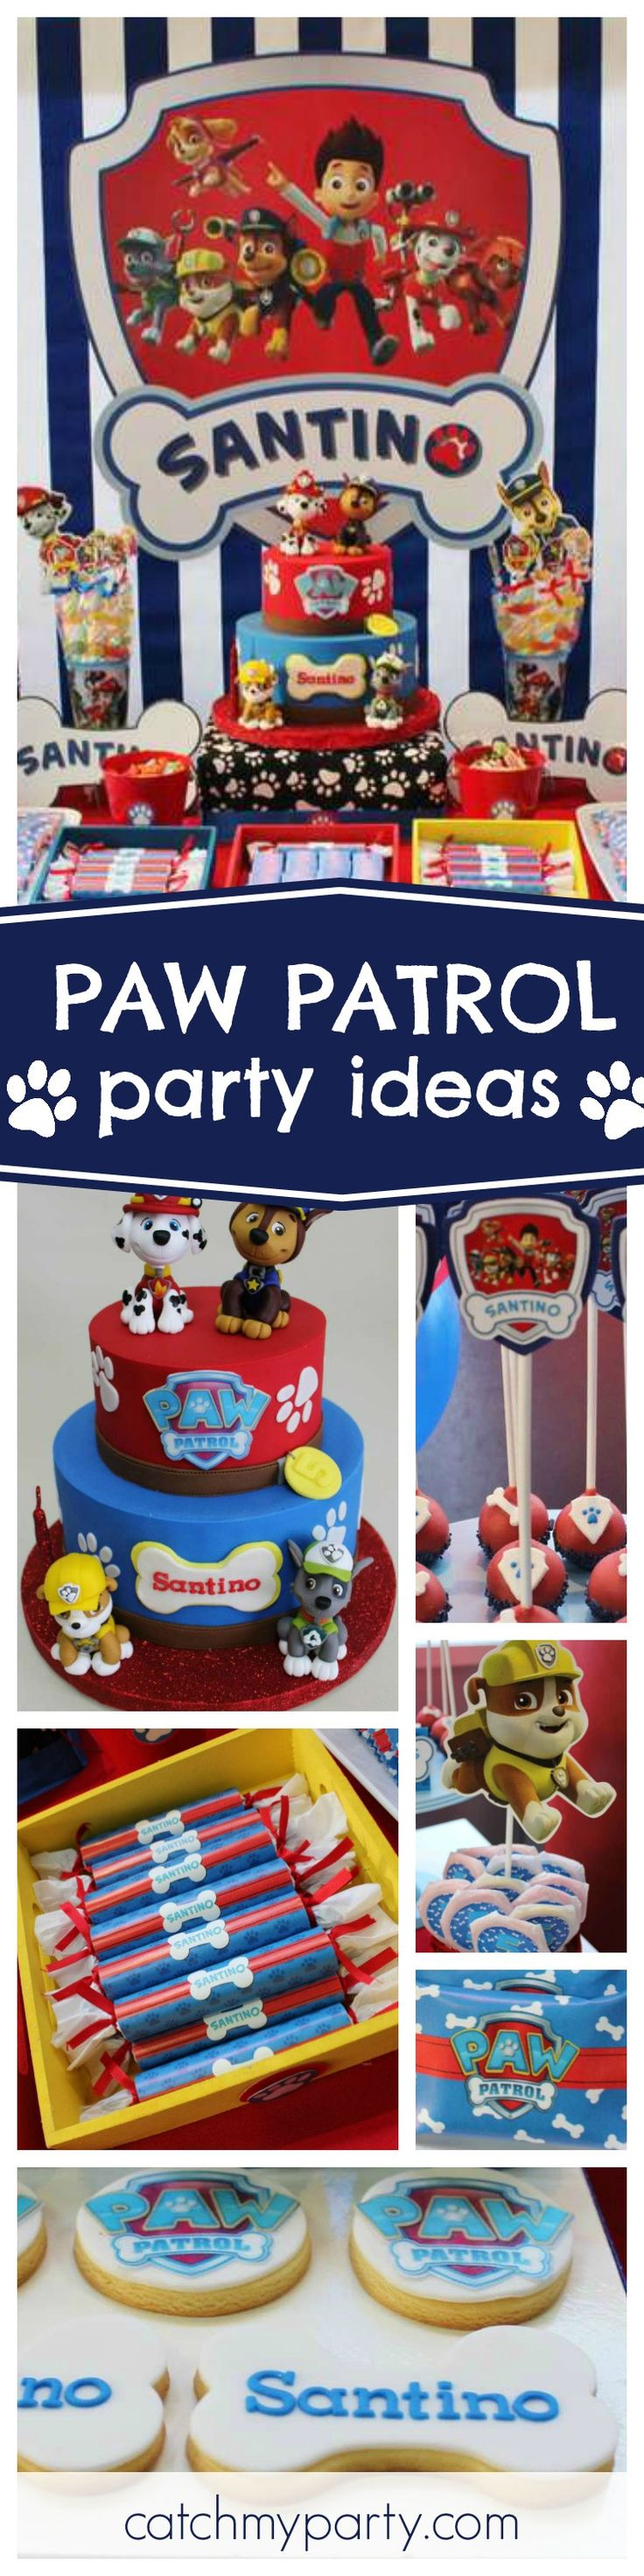 Check out this awesome Paw Patrol Birthday Party. Love the birthday cake. It's so cool! See more party ideas and share yours at CatchMyParty.com